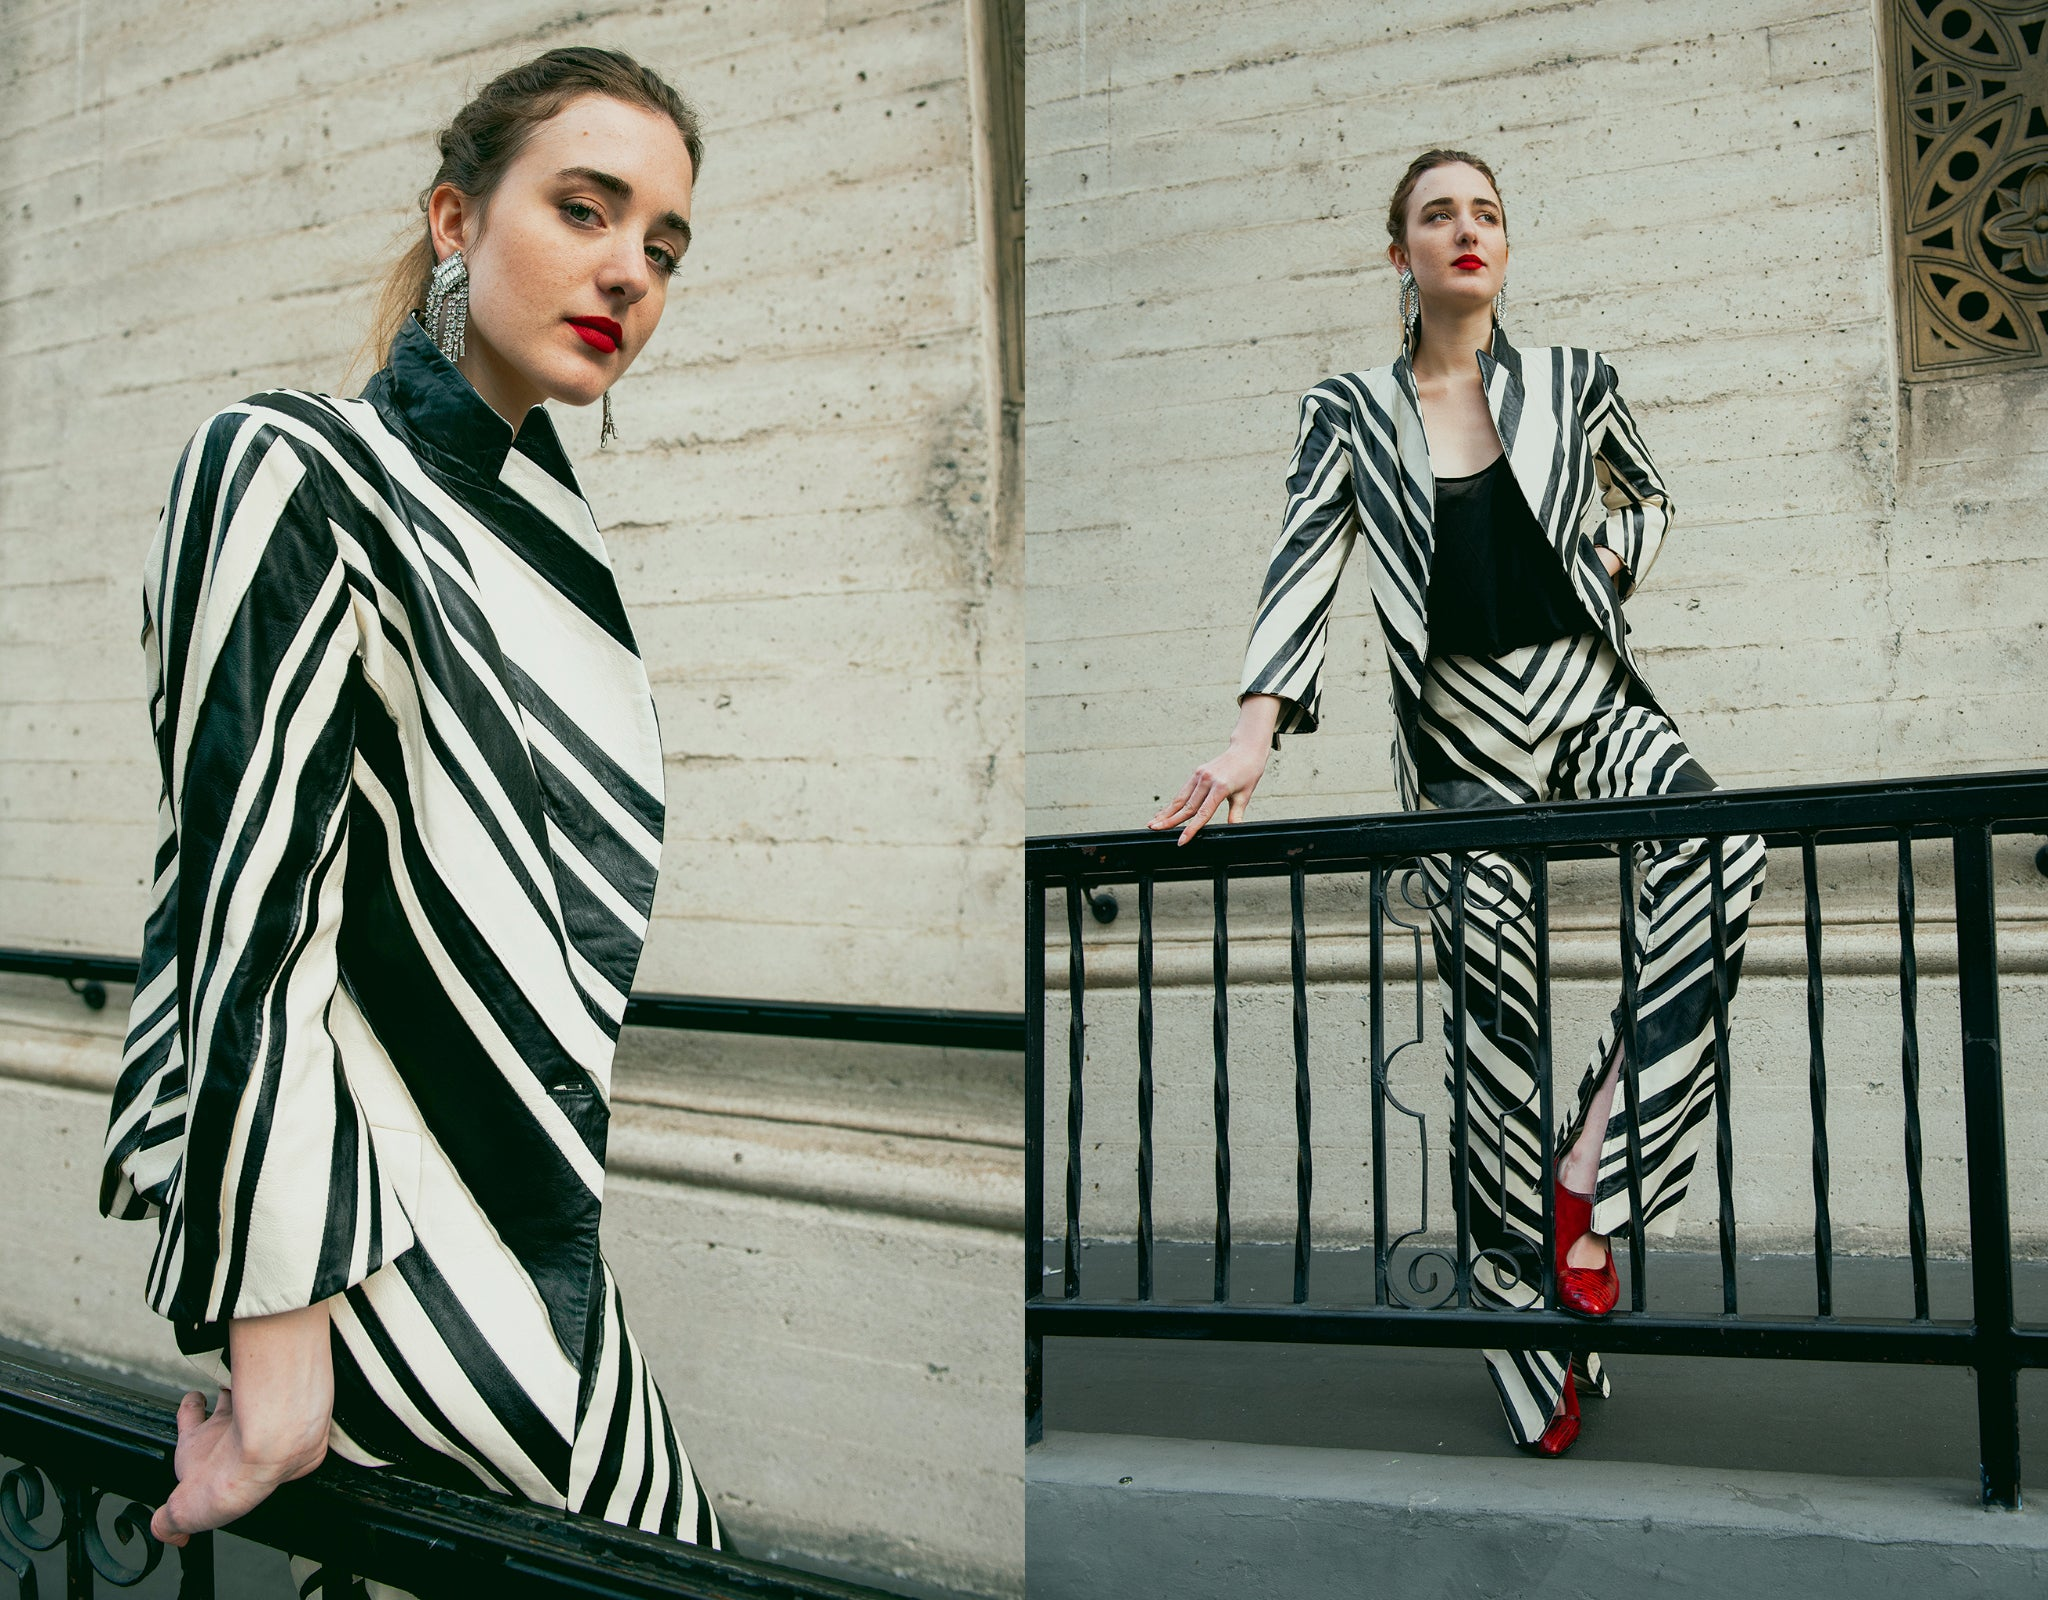 Recess Vintage Girl in zebra stripe Gianfranco Ferre Leather suit with red shoes